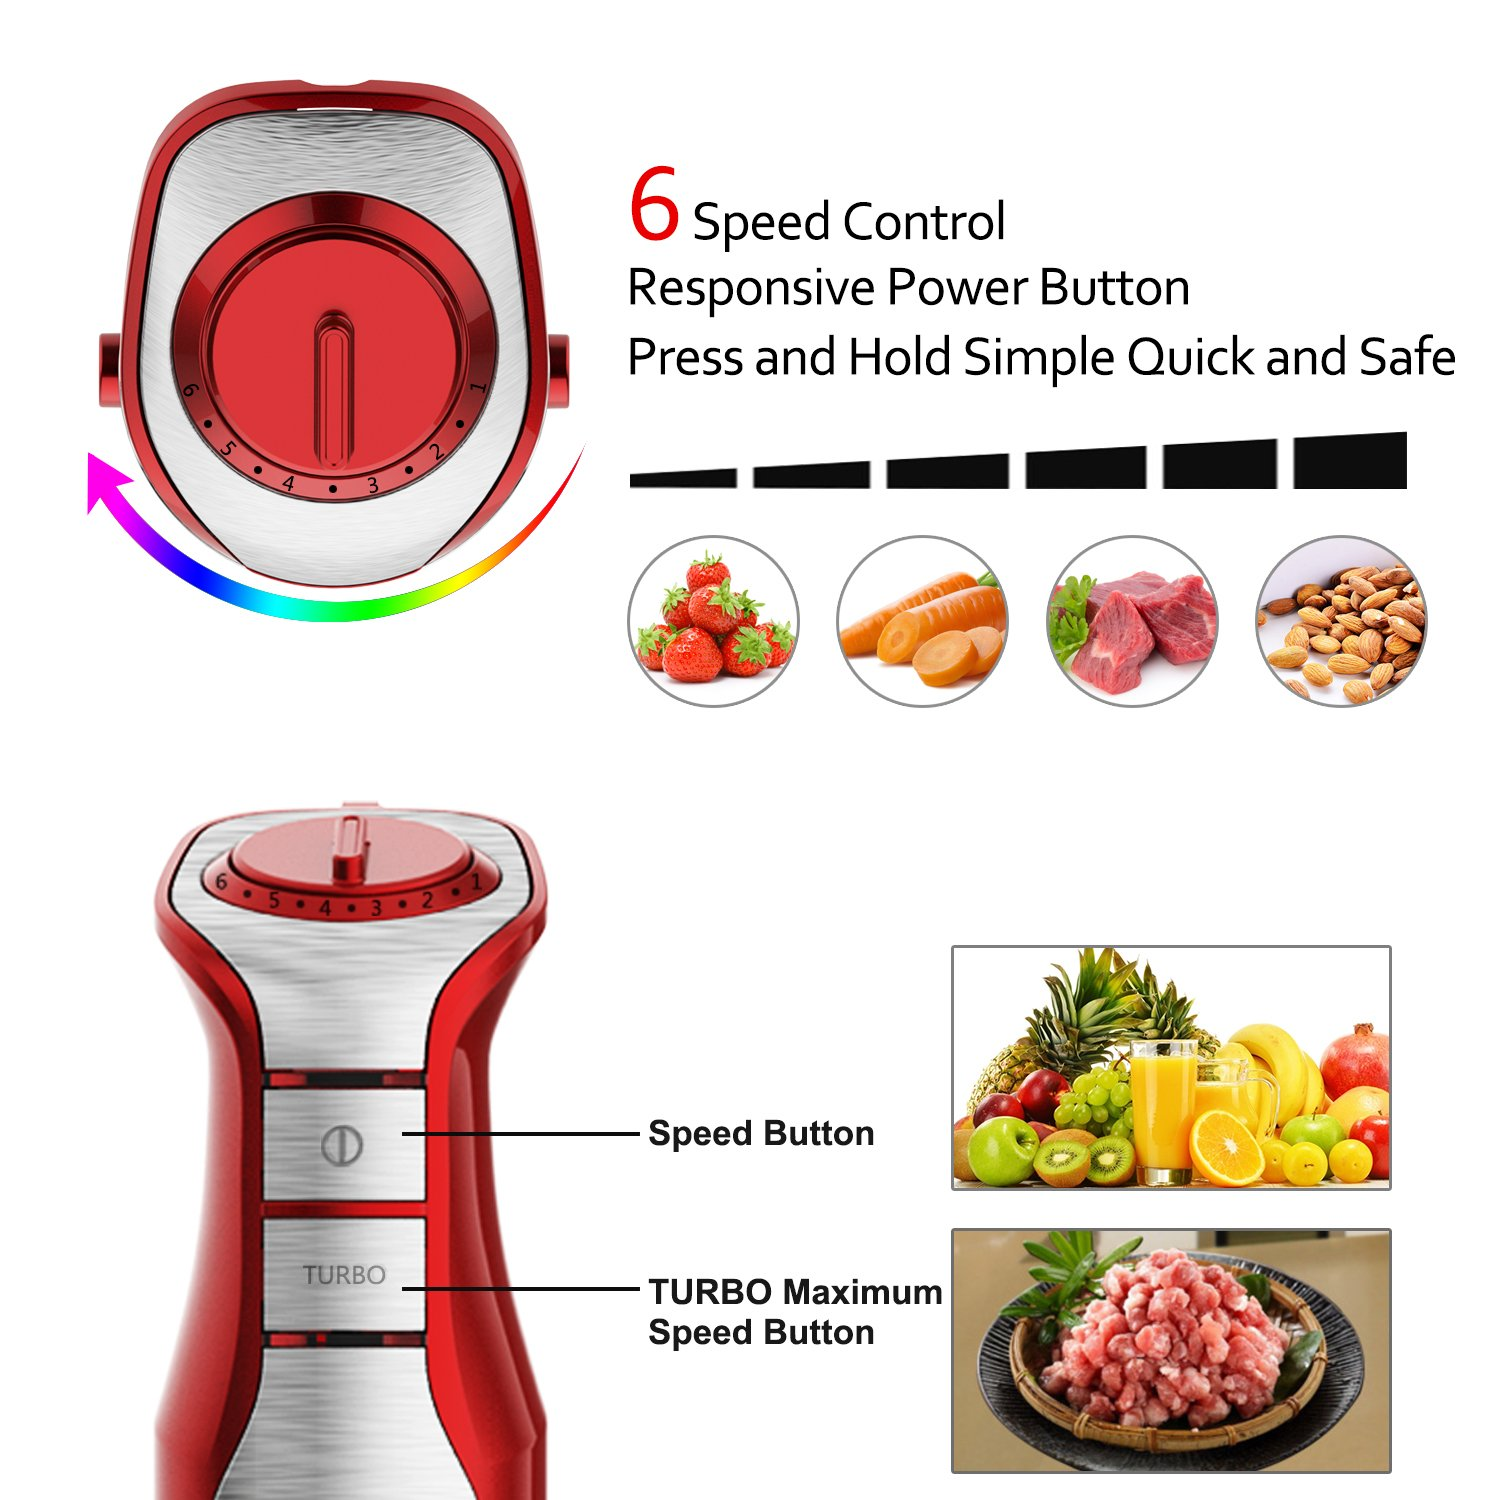 XProject 800W 4-in-1 Hand Blender with 6 Speed,Powerful Immersion Hand Blender for Smoothies Baby Food Yogurt Sauces Soups (Red) by XProject (Image #3)